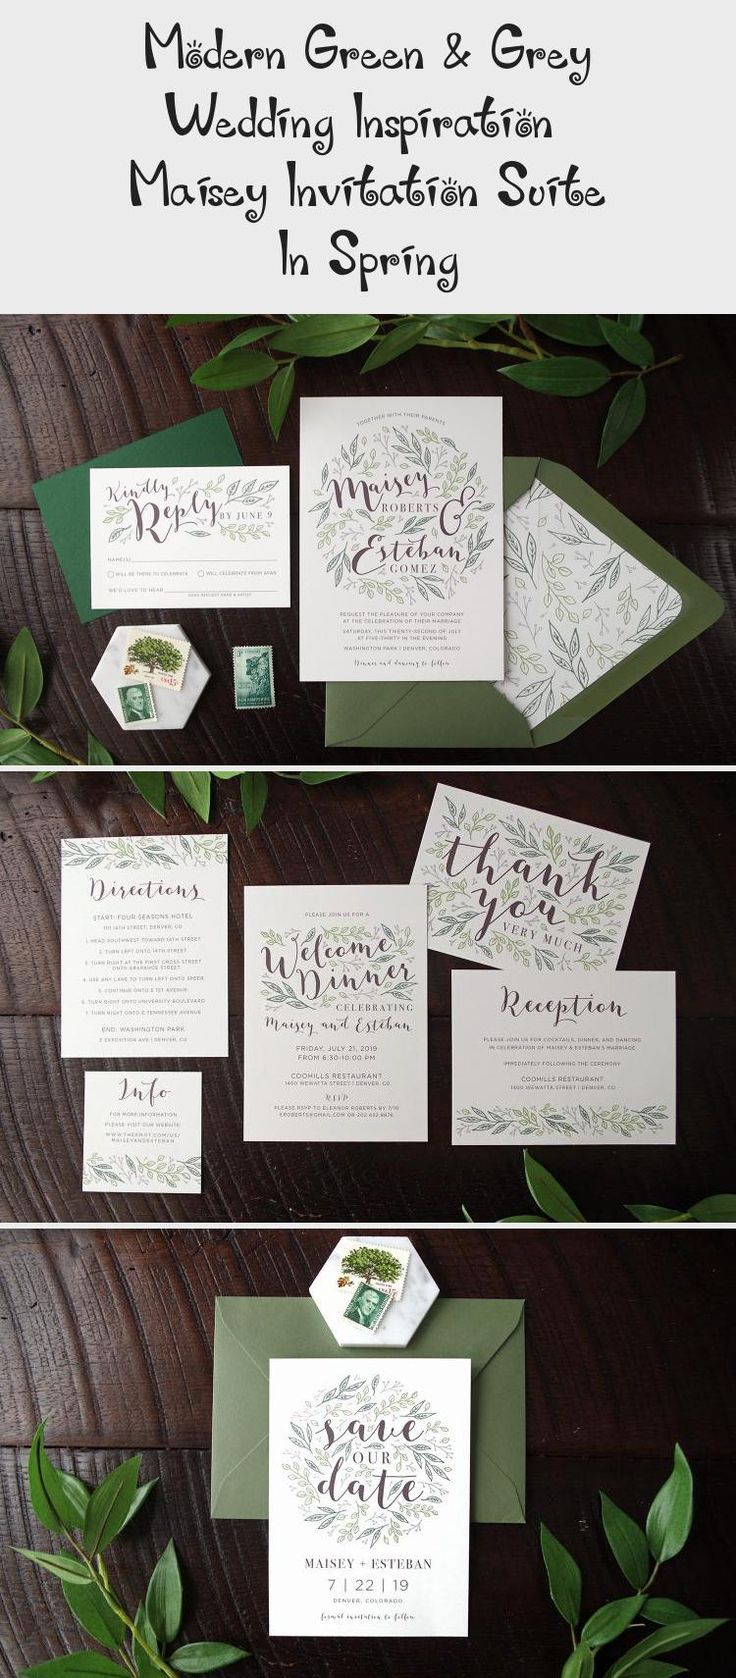 Botanical illustration Green & Grey Wedding inspiration perfect for a modern garden wedding or an urban wedding dripping with greenery. Palette of greens - emerald and sage. Earthy and organic with clean, modern touches. Bridesmaid dresses #SatinBridesmaidDresses #WeddingBridesmaidDresses #BridesmaidDressesSummer #UniqueBridesmaidDresses #TanBridesmaidDresses